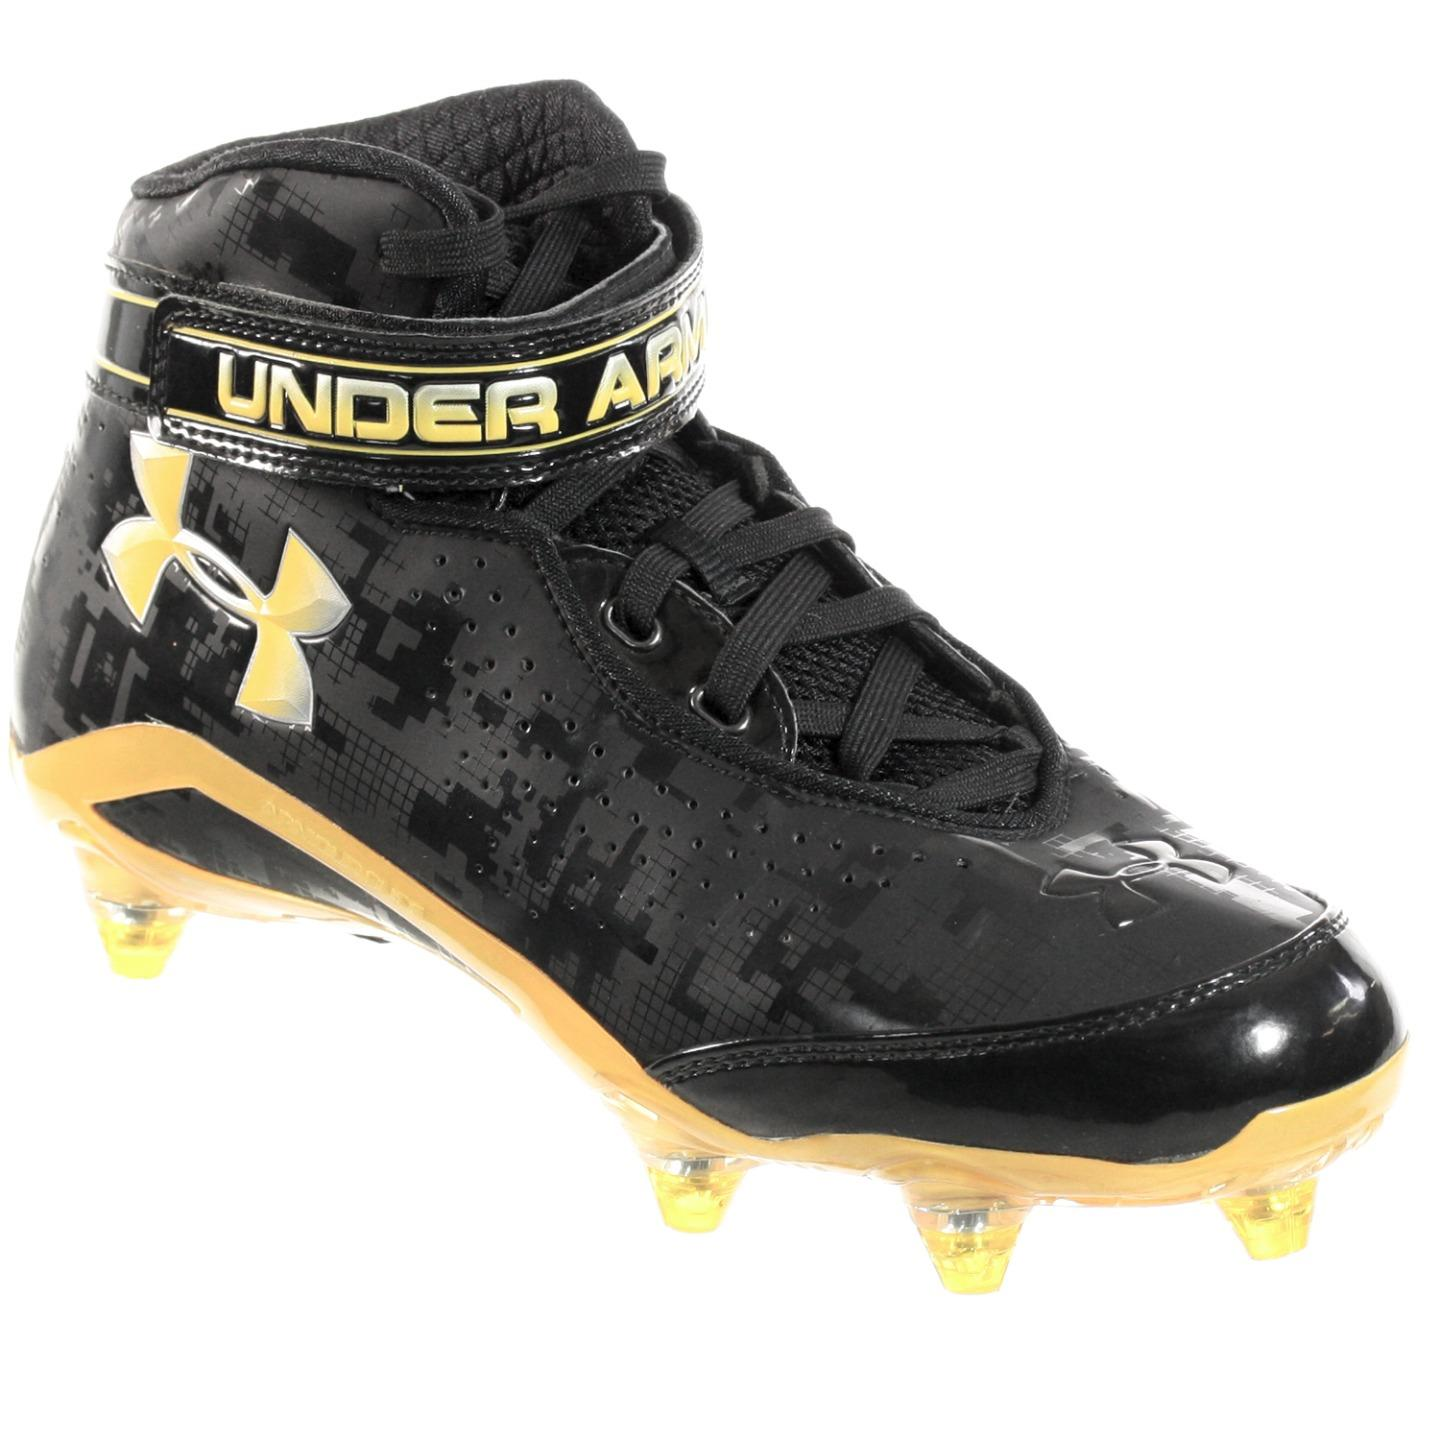 Under Armour Under Armour Men S Football Cleats Run N Gun D Black